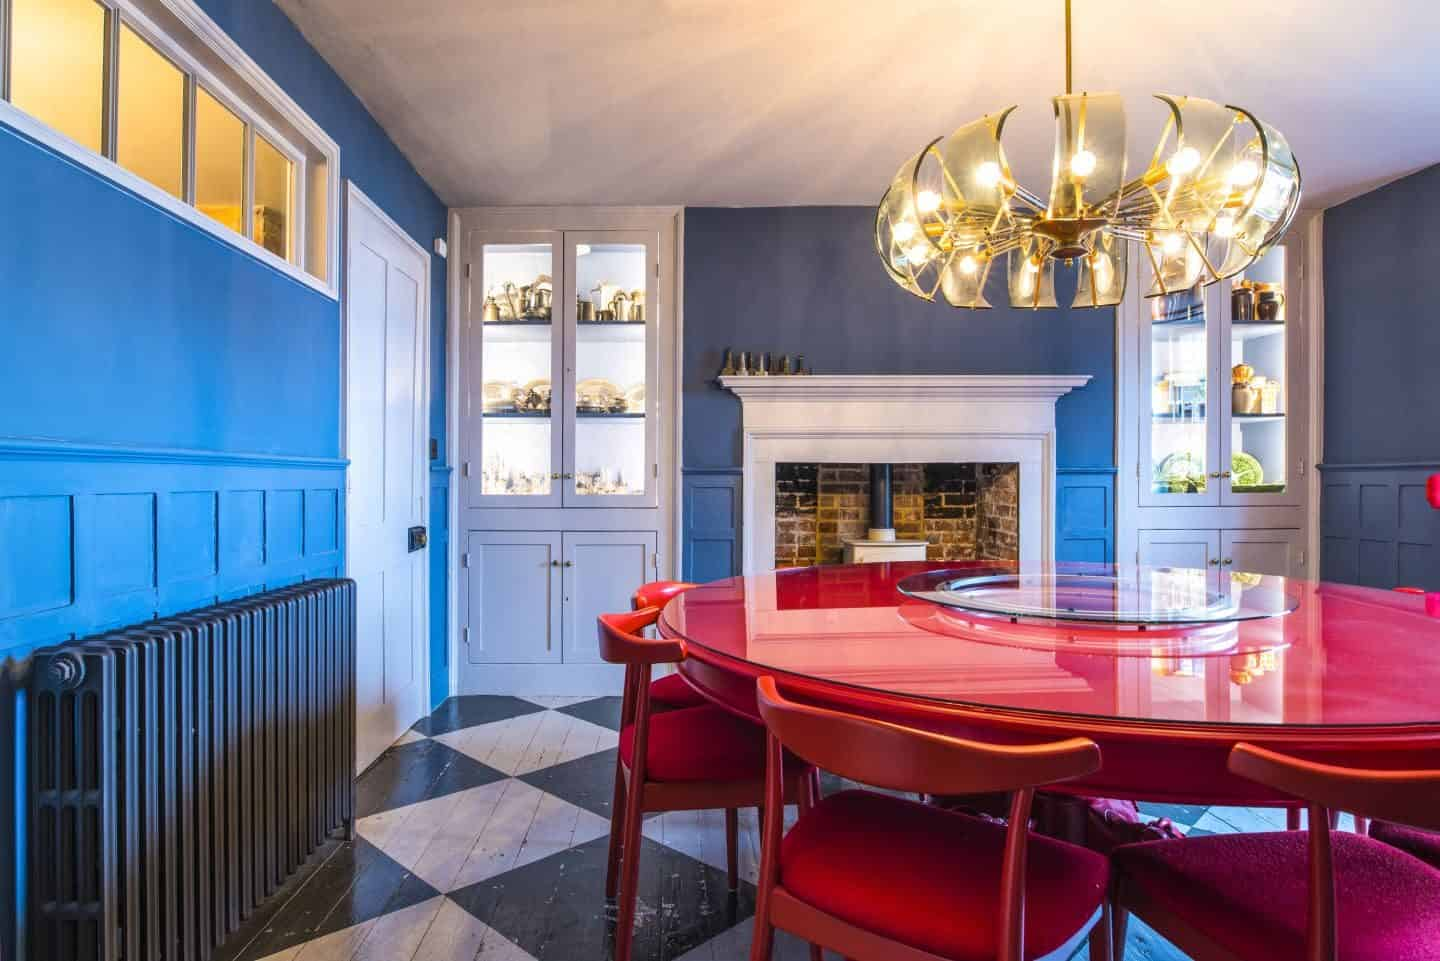 Image from the book Love Colour ©annastarmer - A blue dining room with red table and chairs